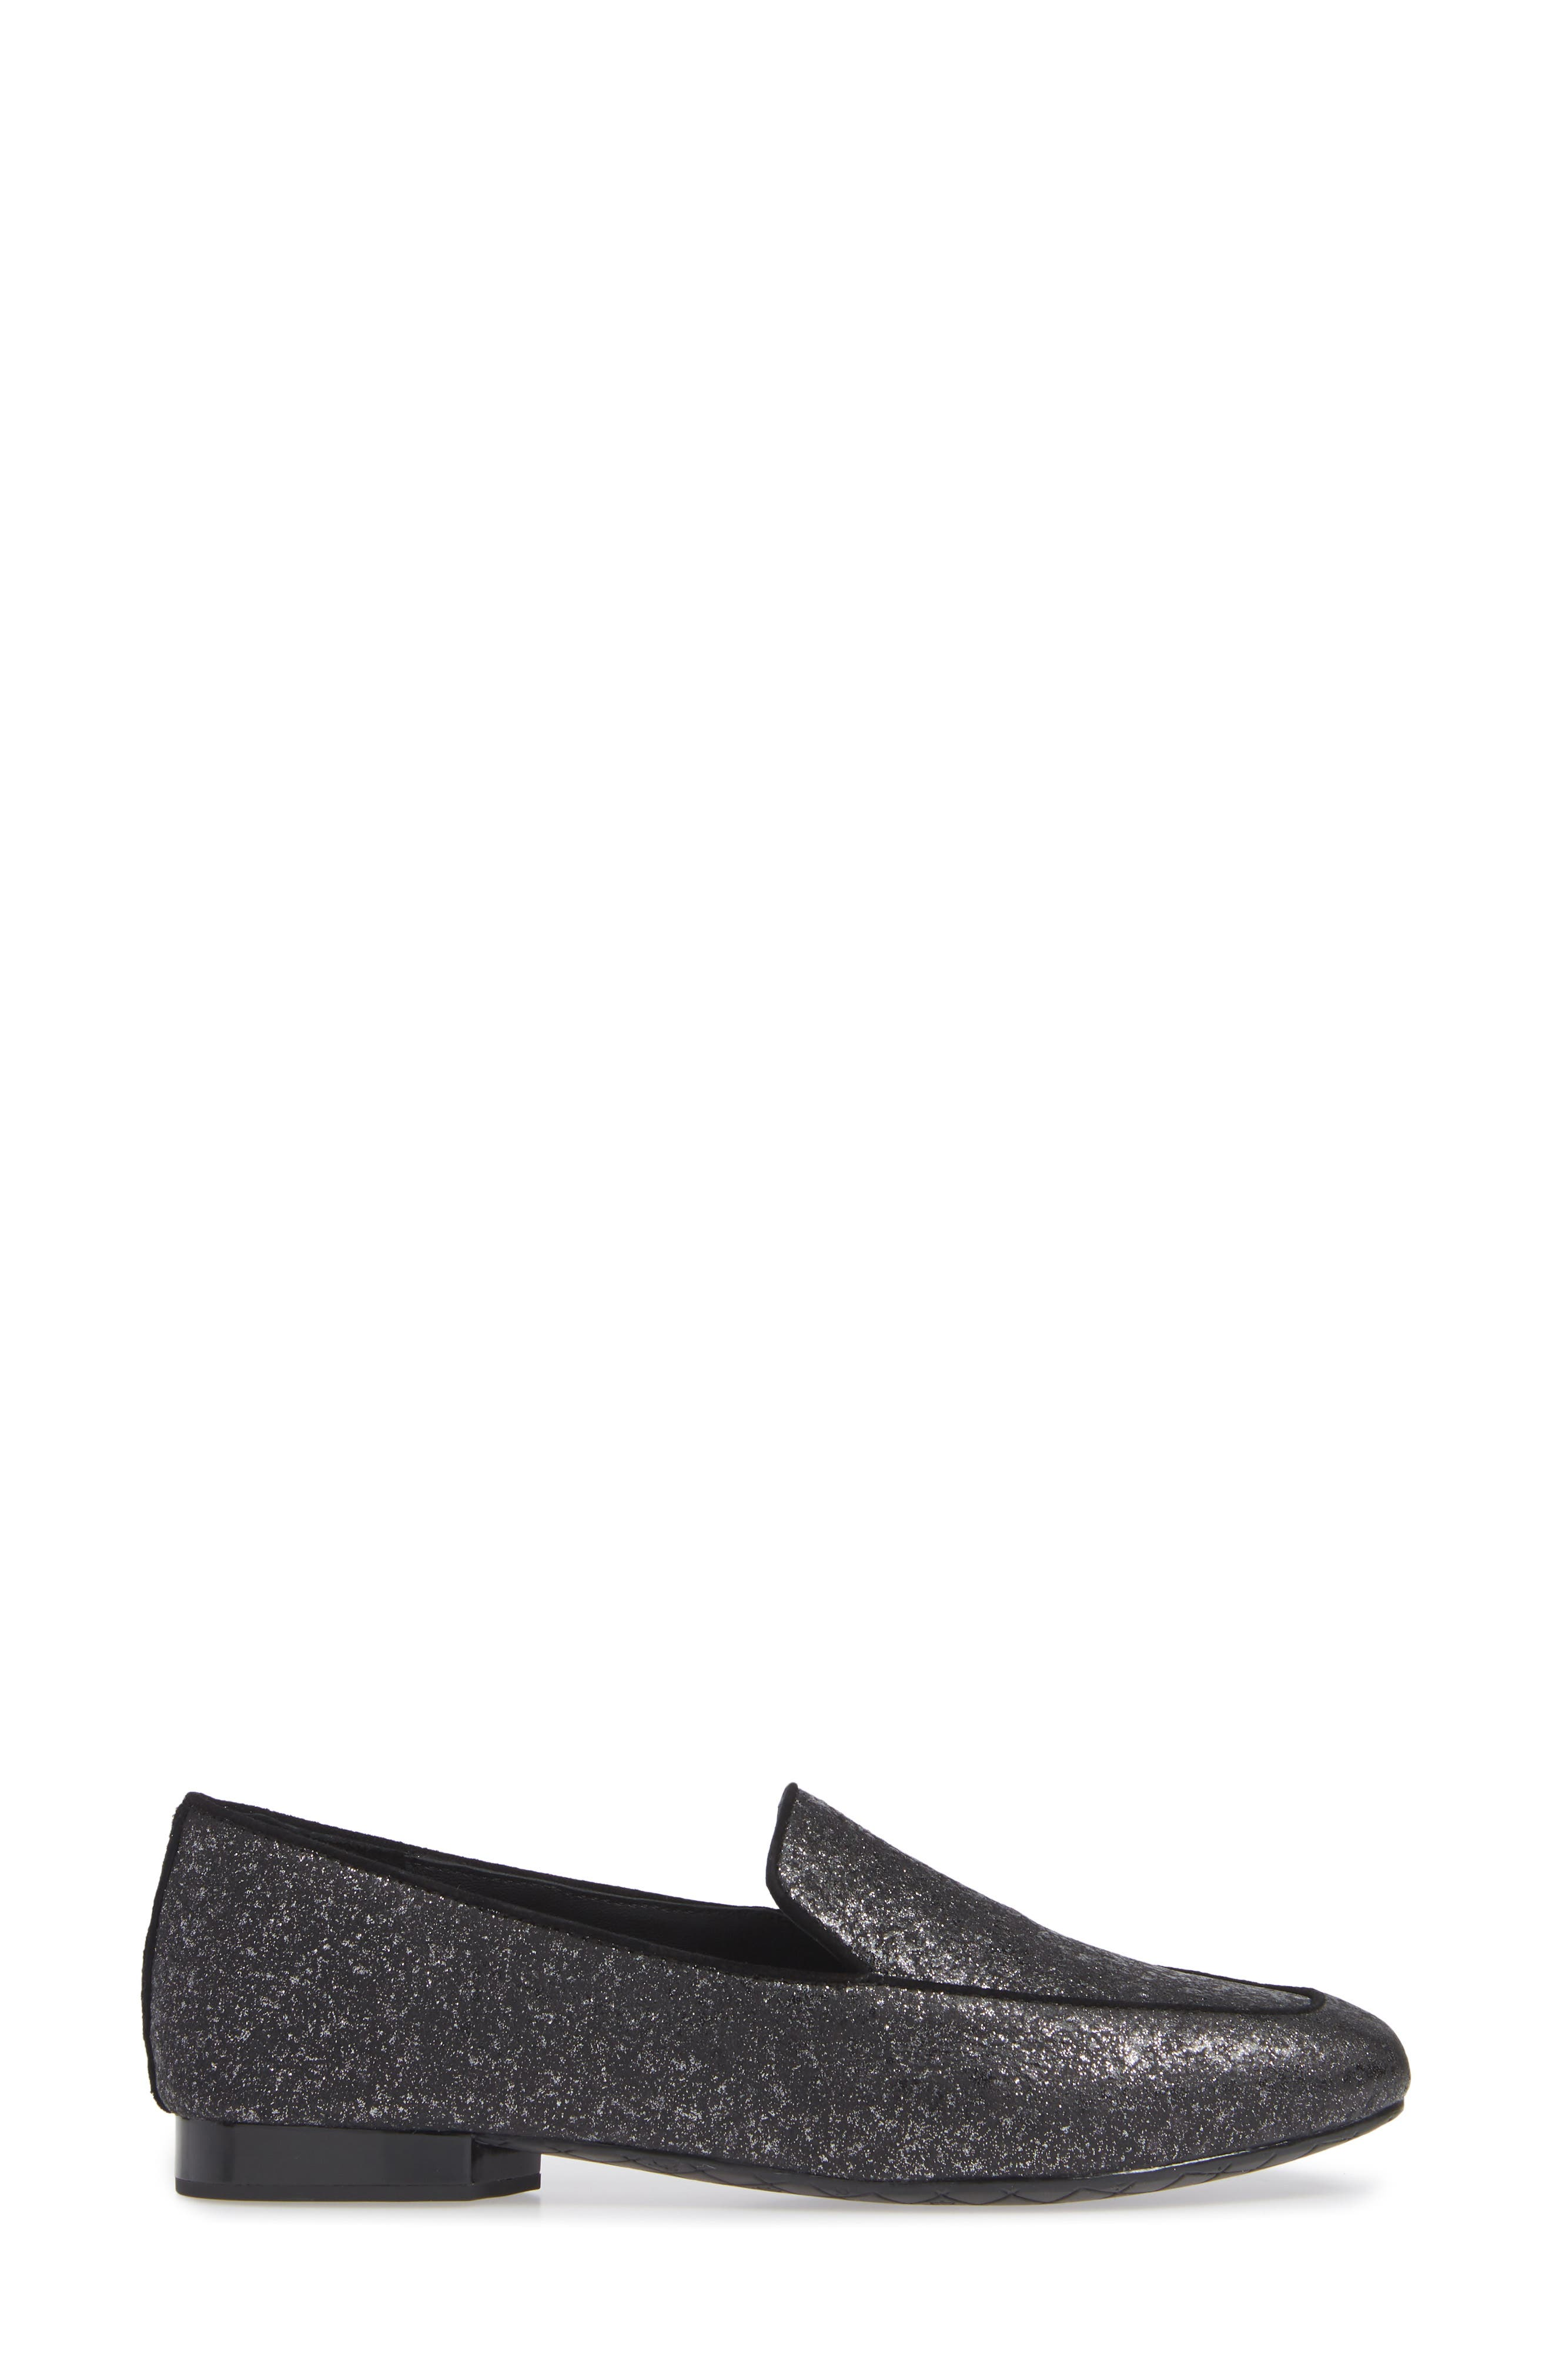 Heddy Loafer,                             Alternate thumbnail 3, color,                             SILVER GLITTER SUEDE